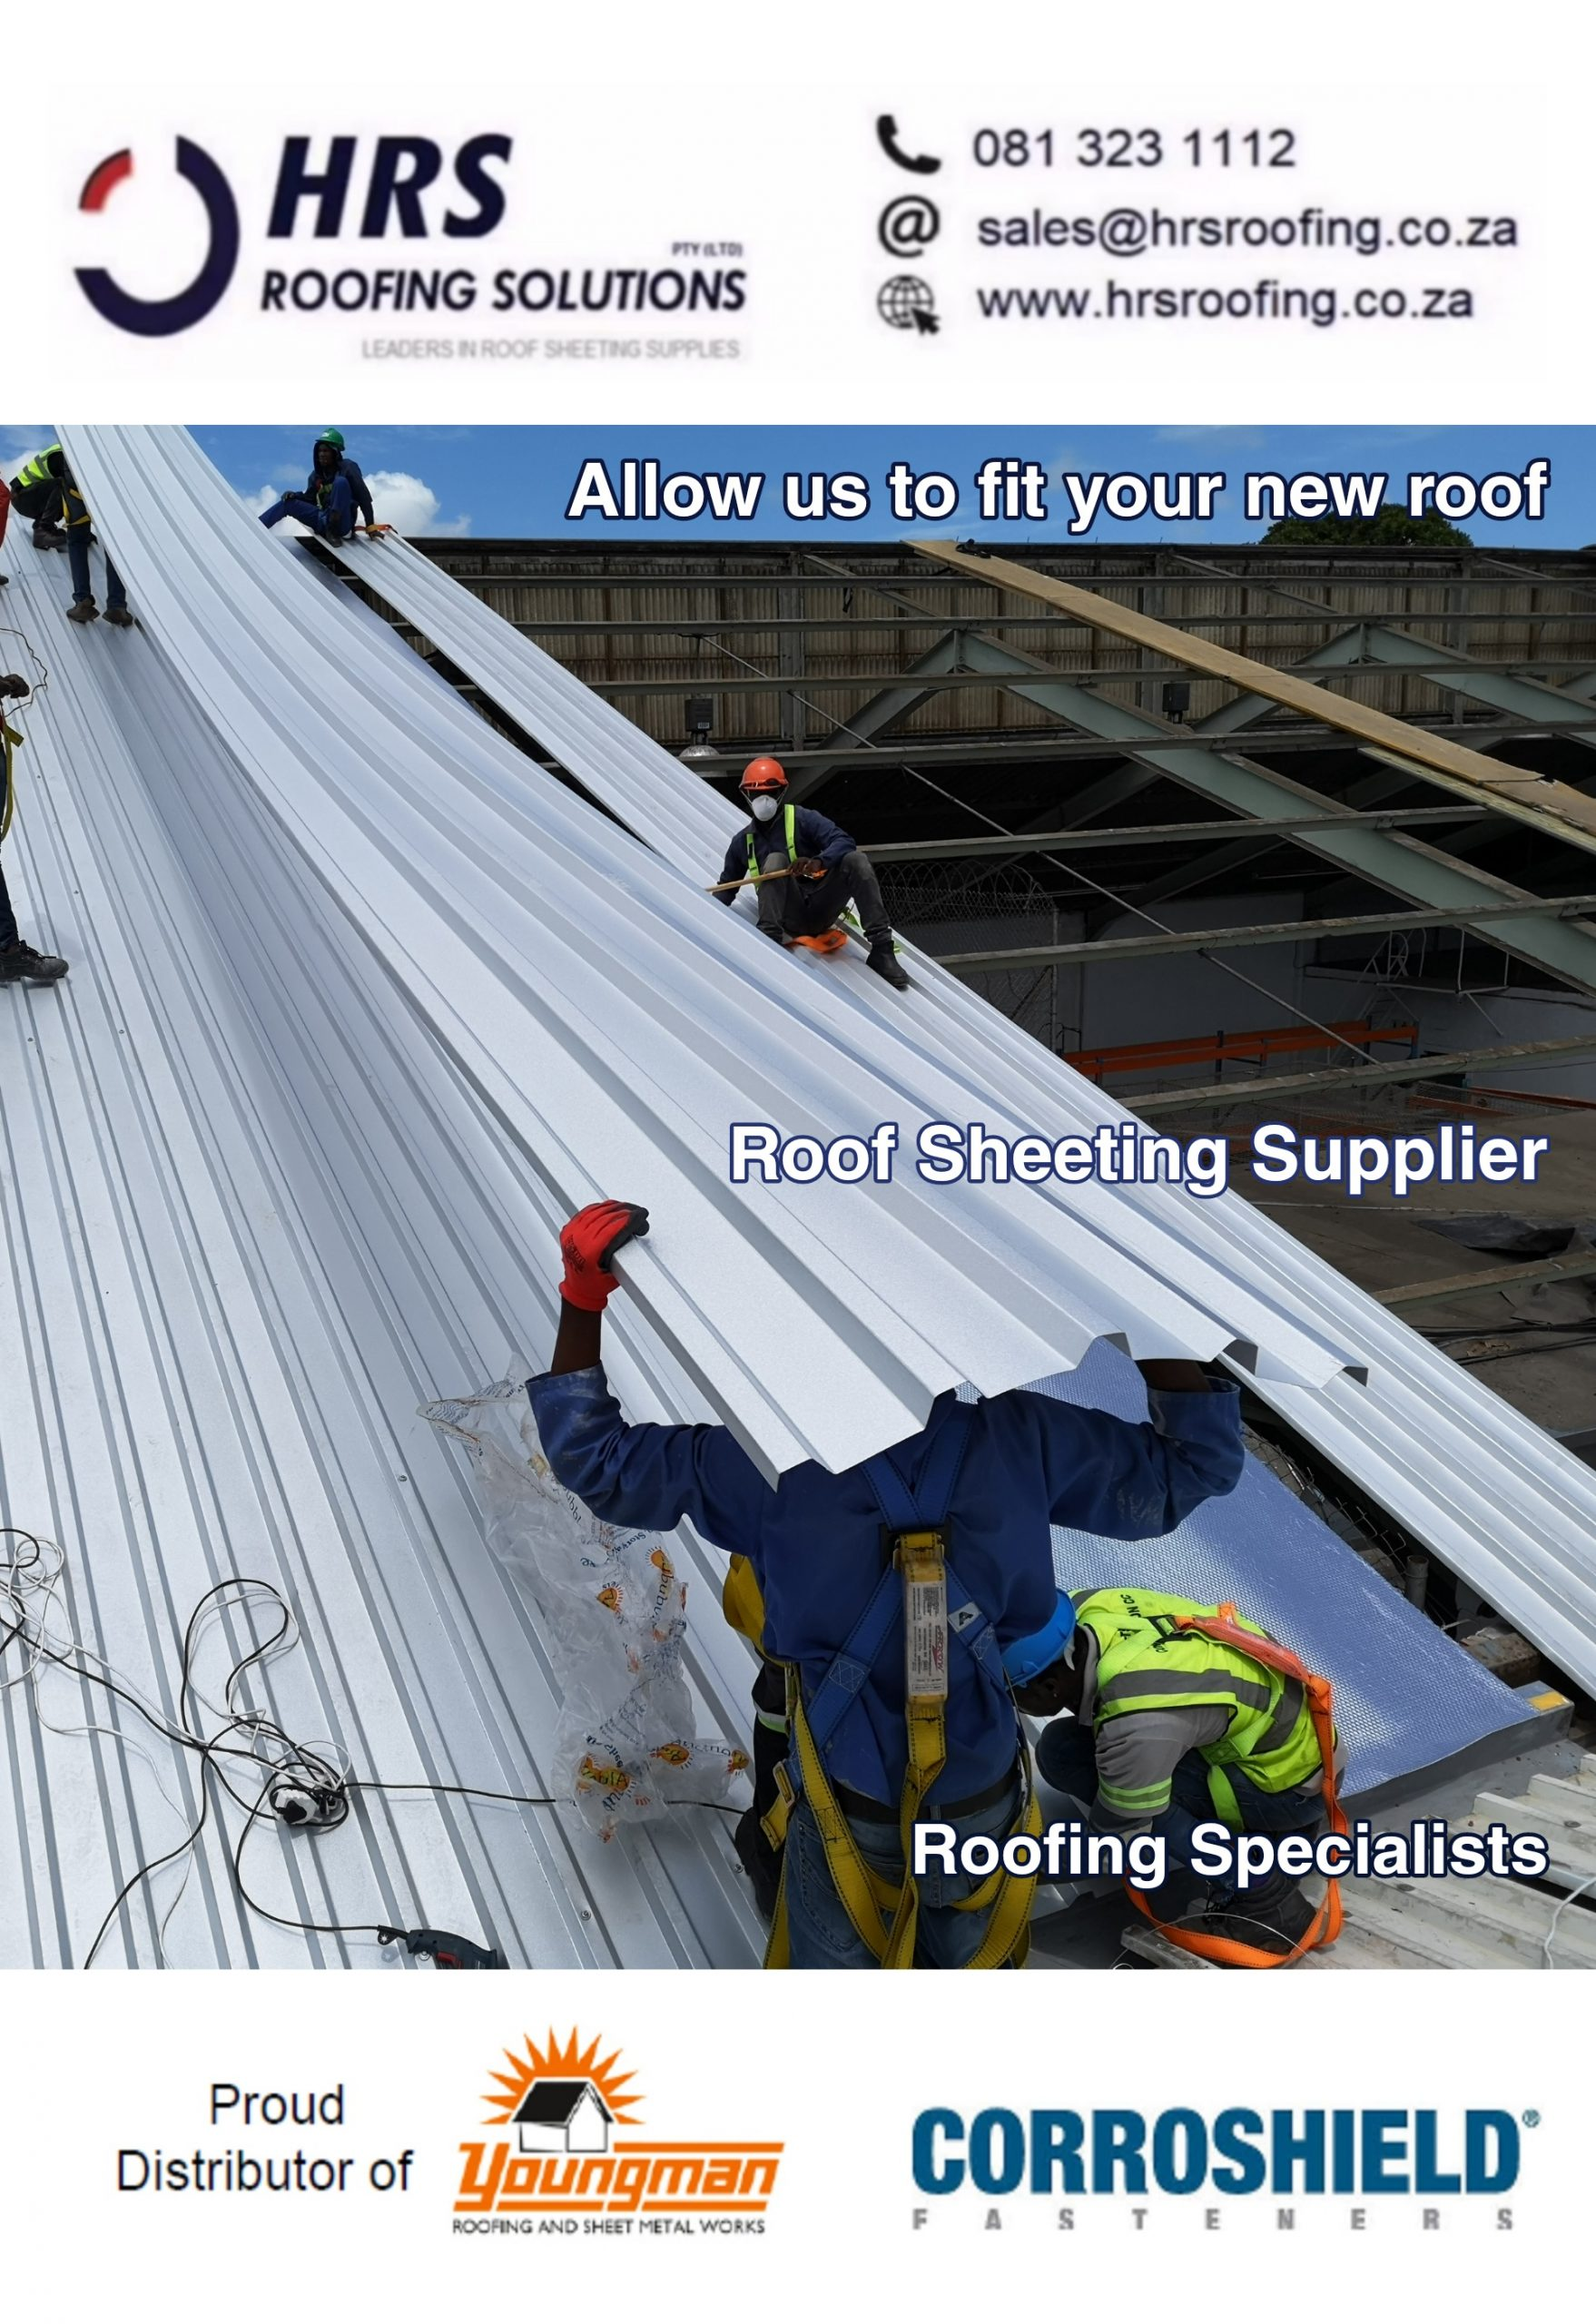 roofing Contractors cape Town hrs roofing roof sheeting ibr or Corrugated Colorbon scaled - Roofing Gallery